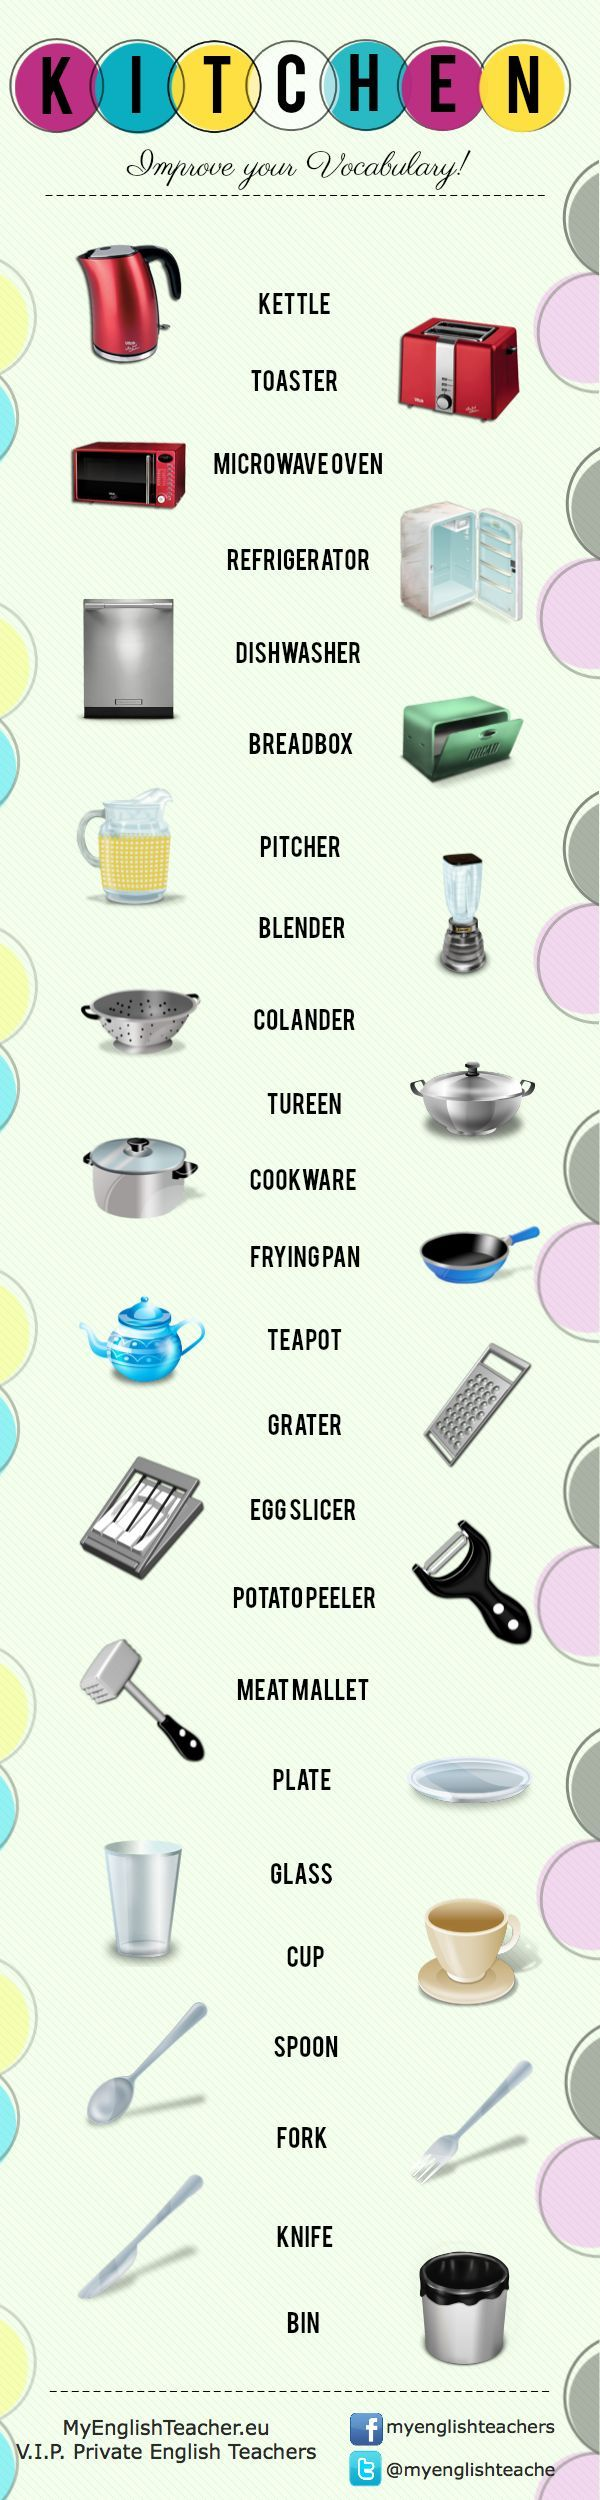 24 Tools in the Kitchen - Improve Your Vocabulary